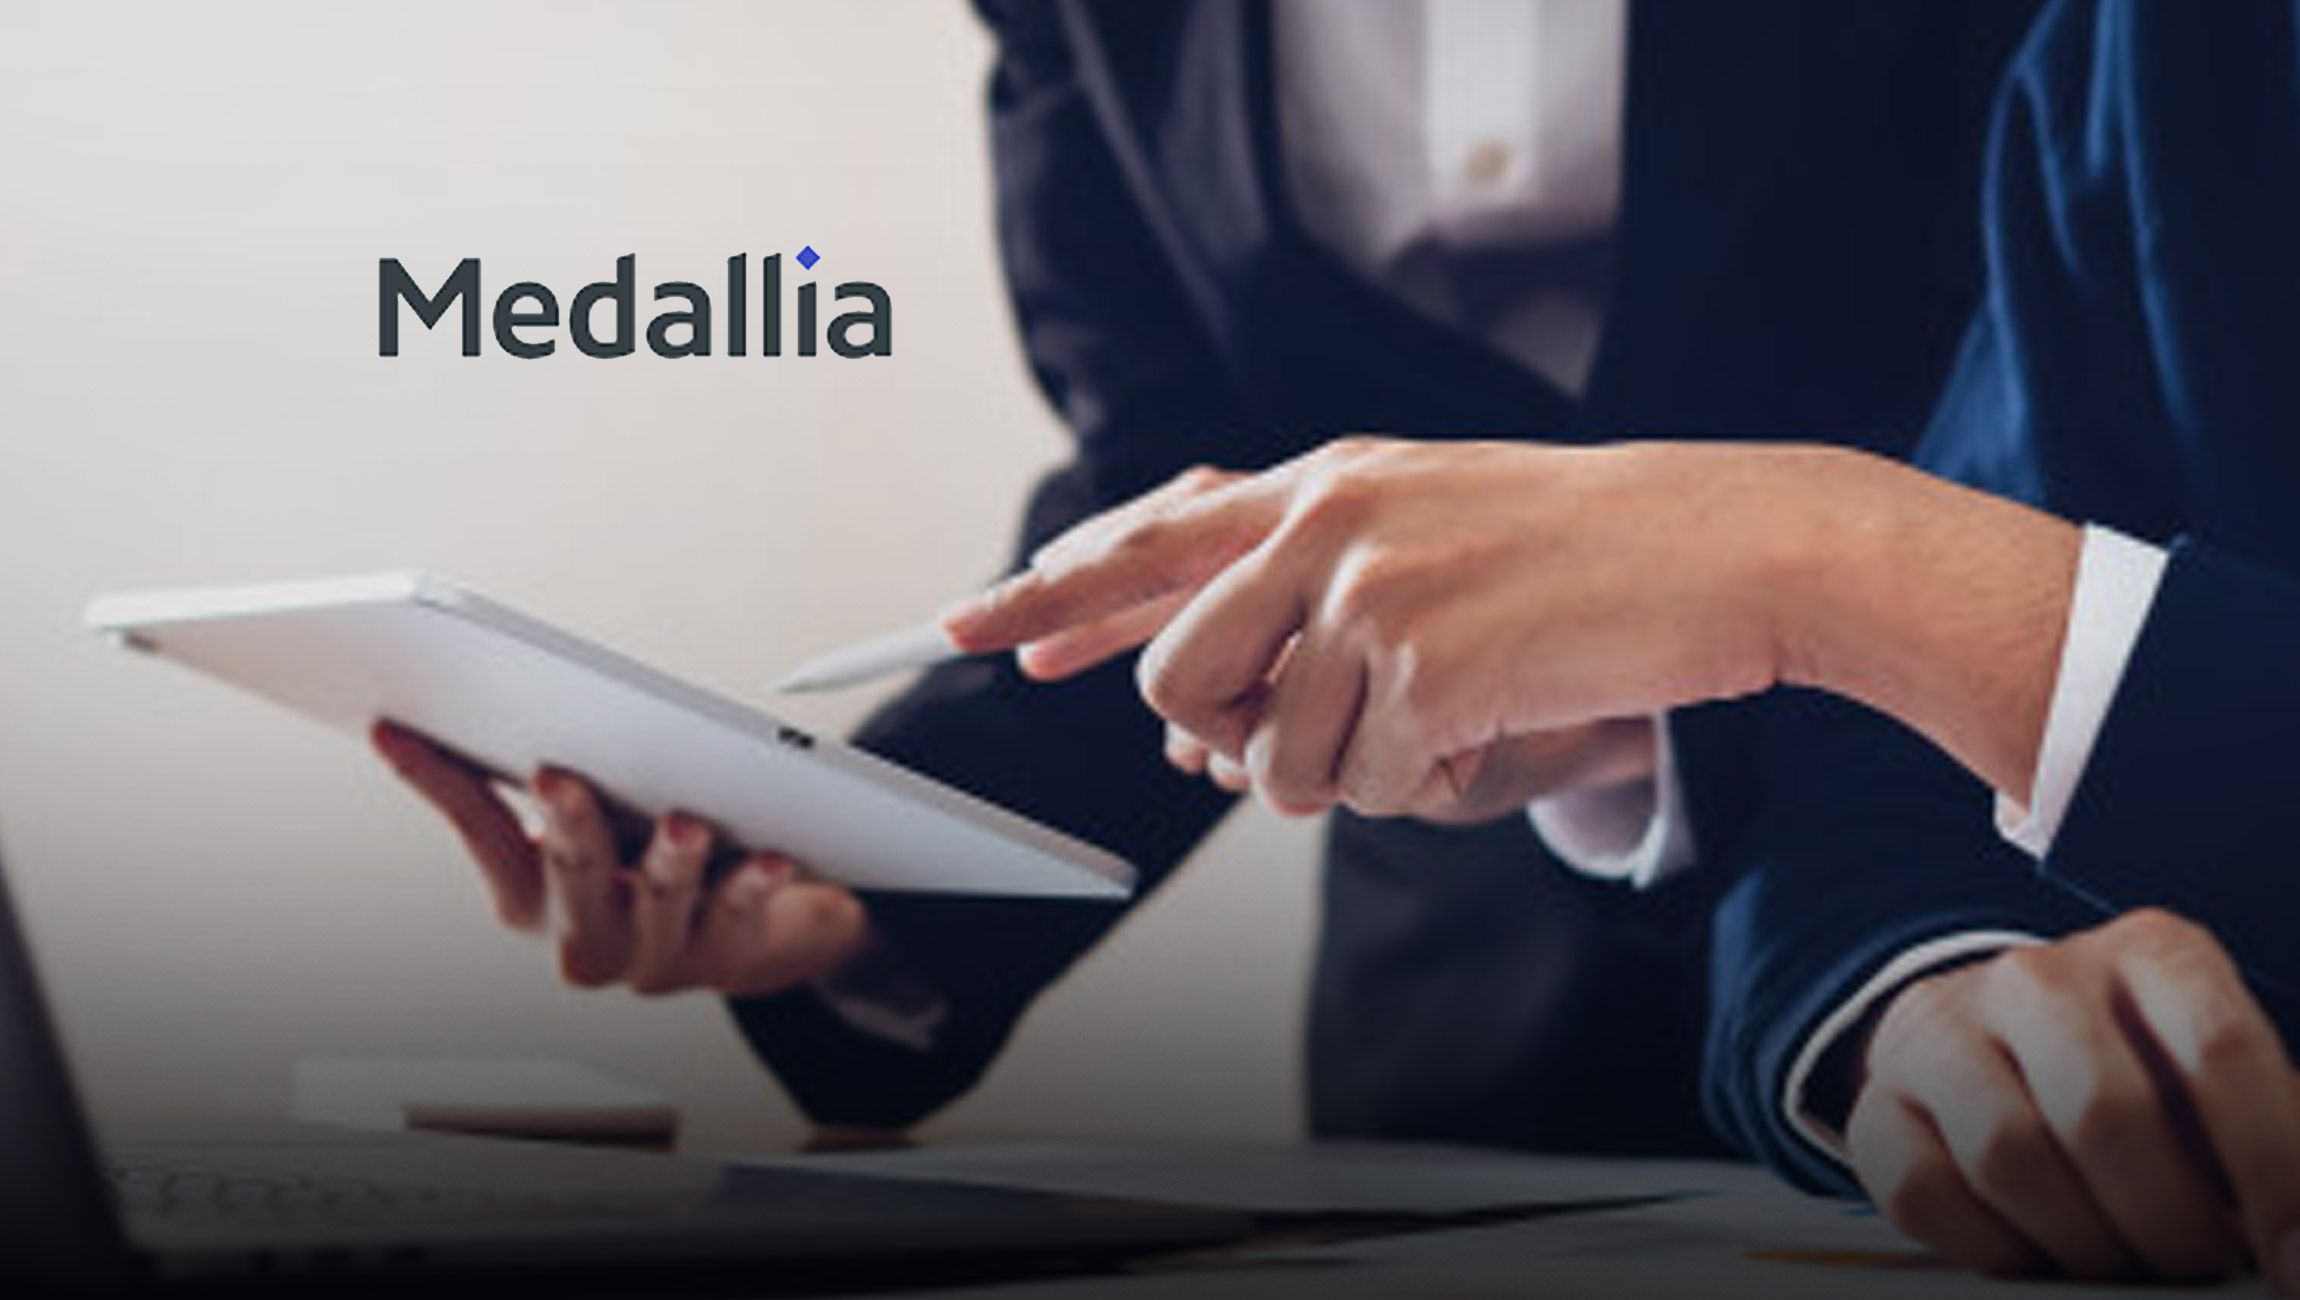 Pandora Chooses Medallia to Understand and Optimize Digital Experience